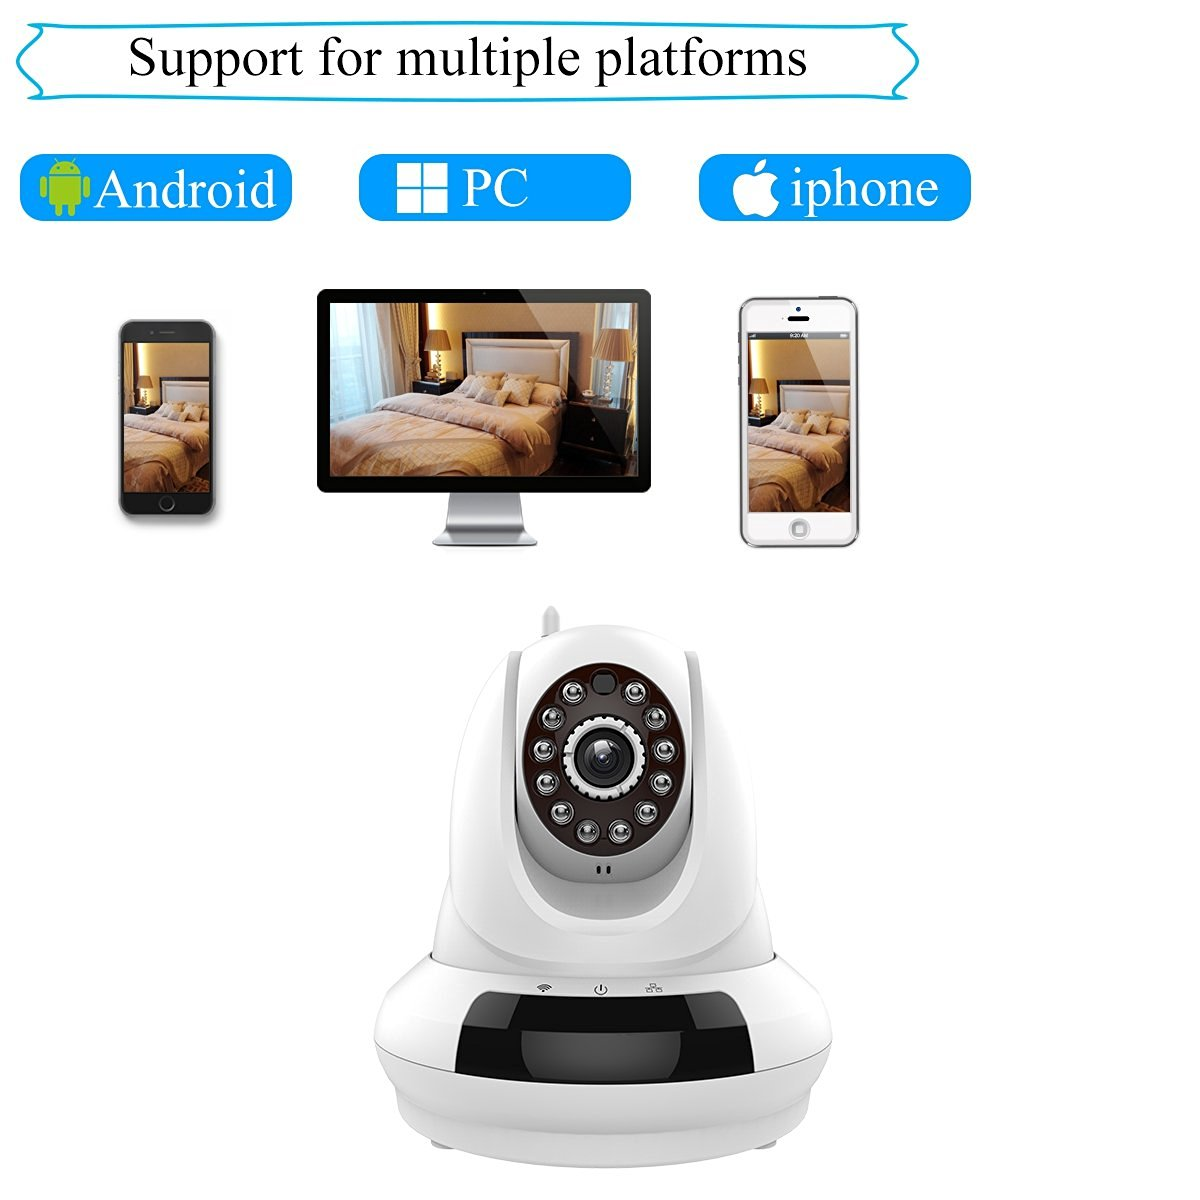 Agazer Wireless IP Video 720P HD Camera WiFi Home Surveillance Security Monitor, Pan-Tilt Remote Motion Detection Monitoring for Baby/Nanny/Pet, Night Vision 2 Way Audio Mobile View (FI-366, White)